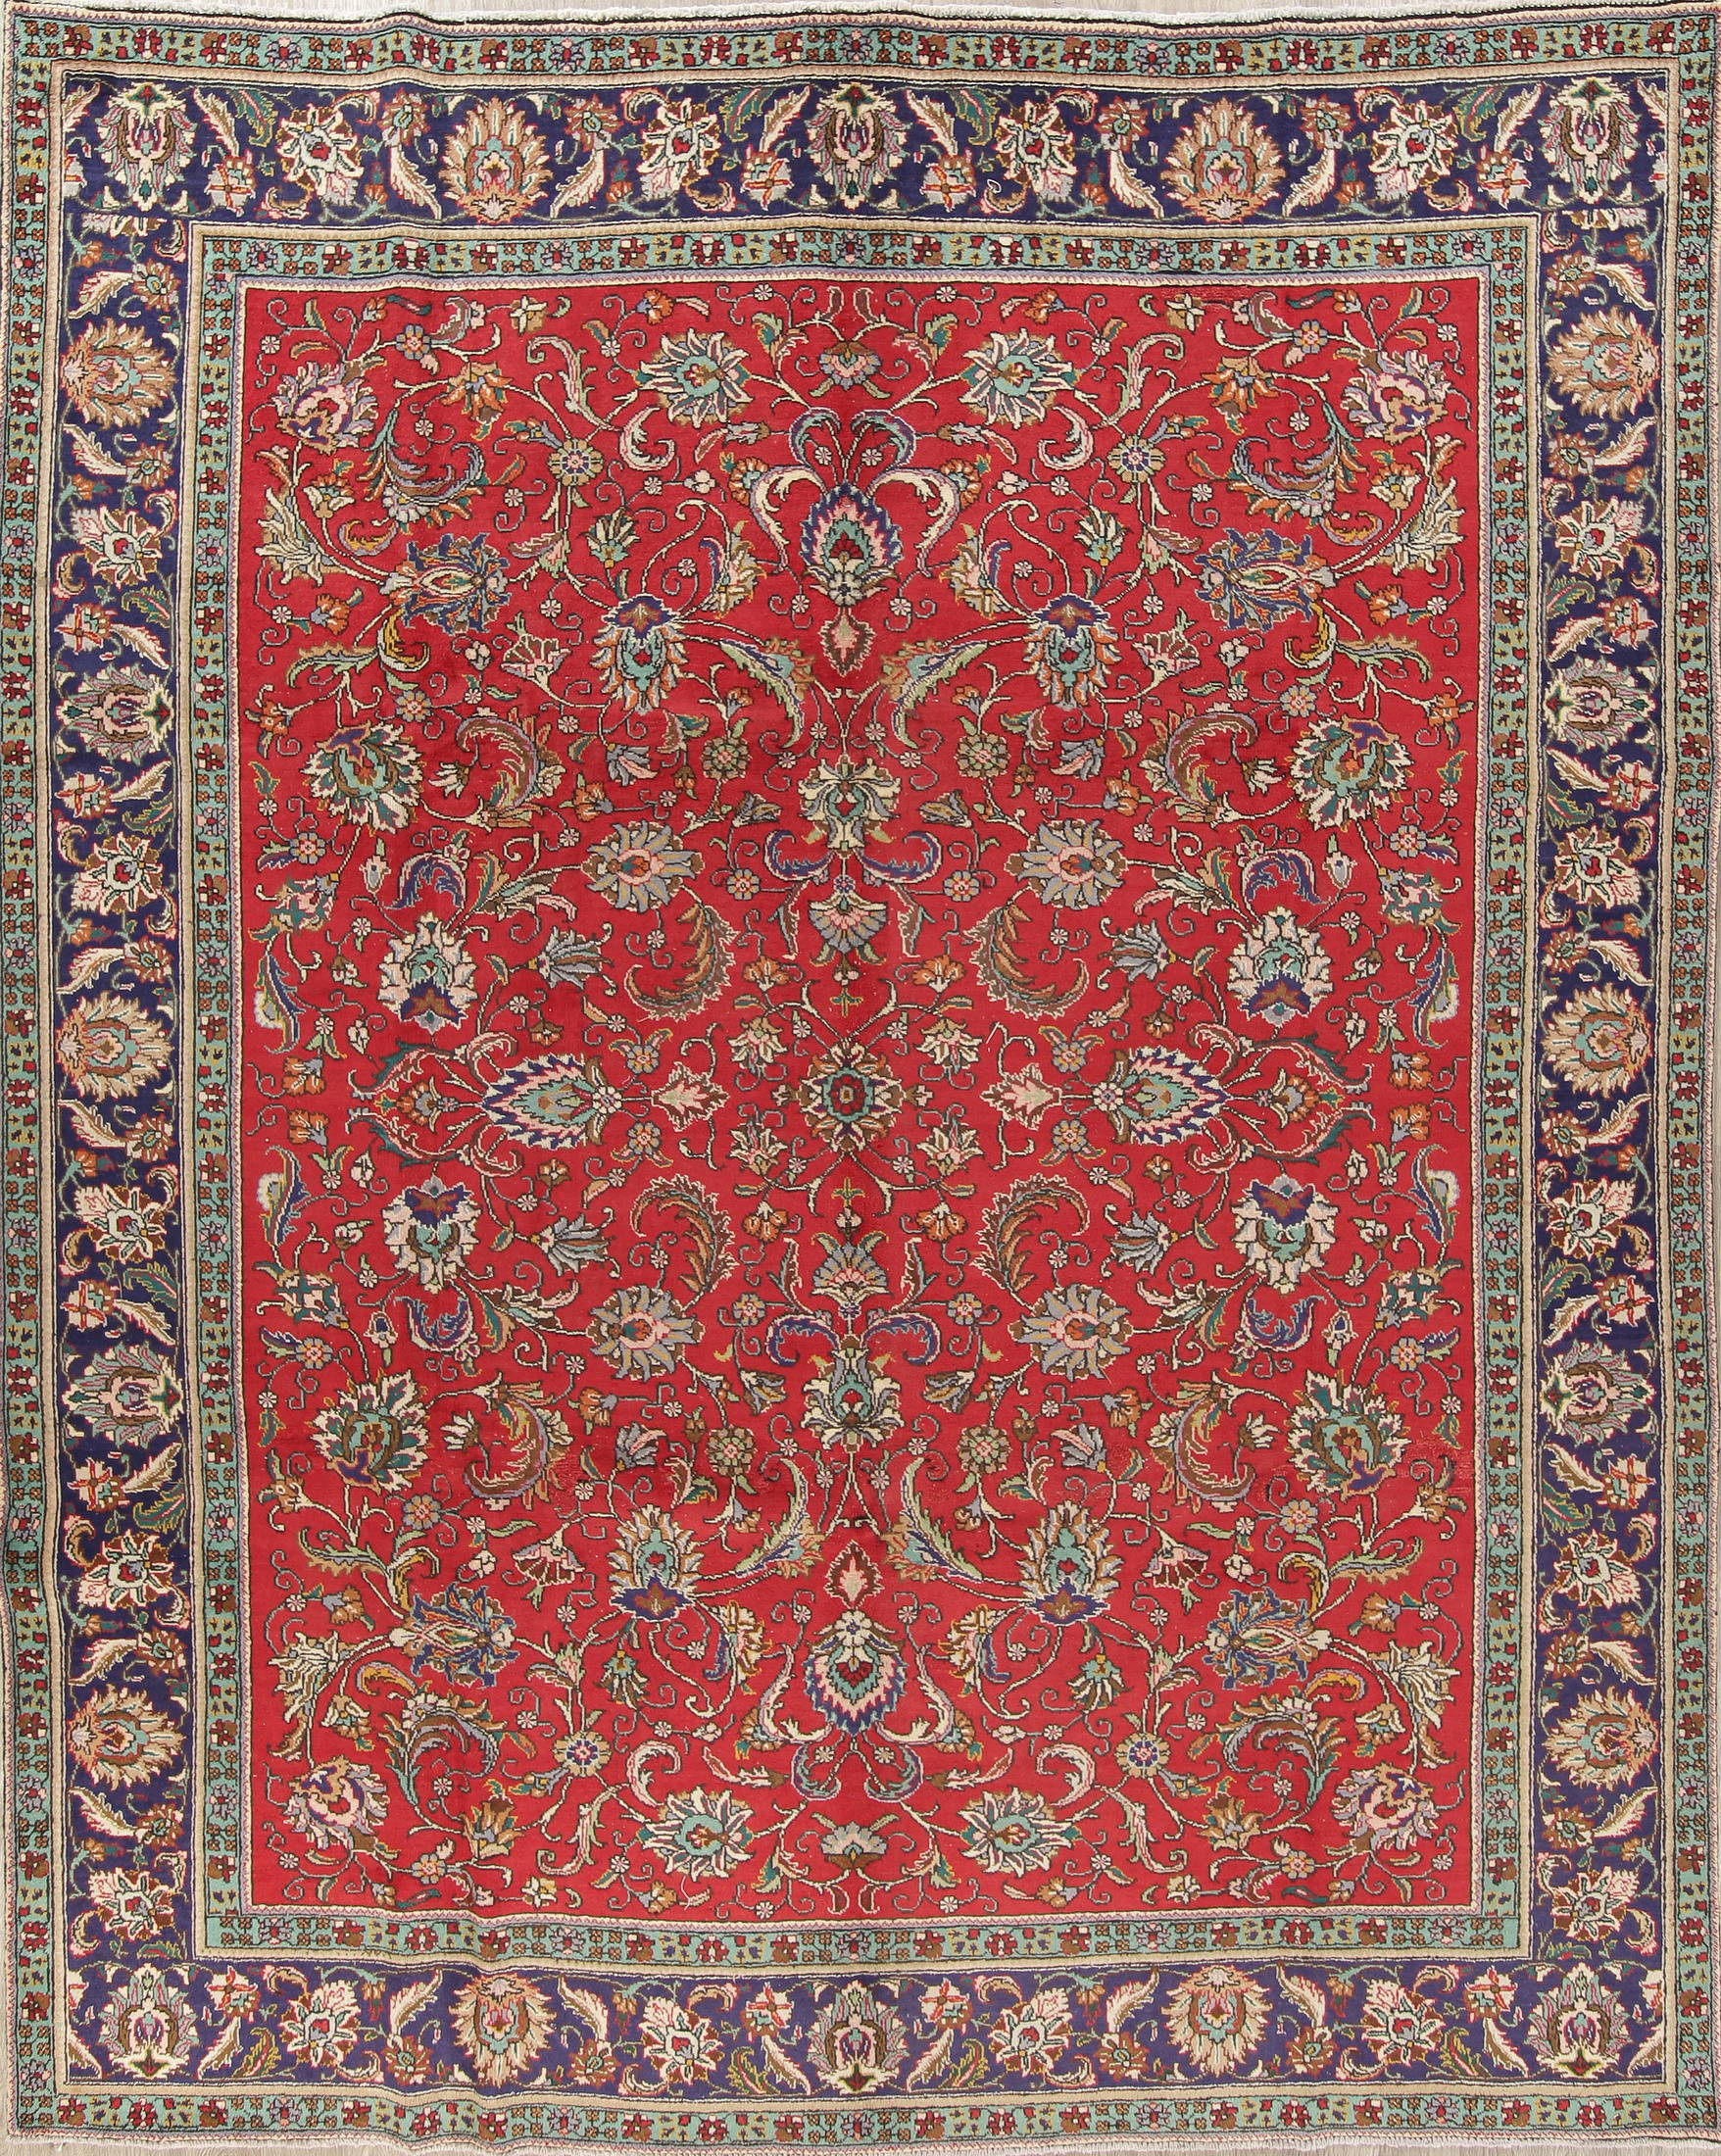 All Over Floral Red Tabriz Persian Hand Knotted 9x12 Wool Area Rug